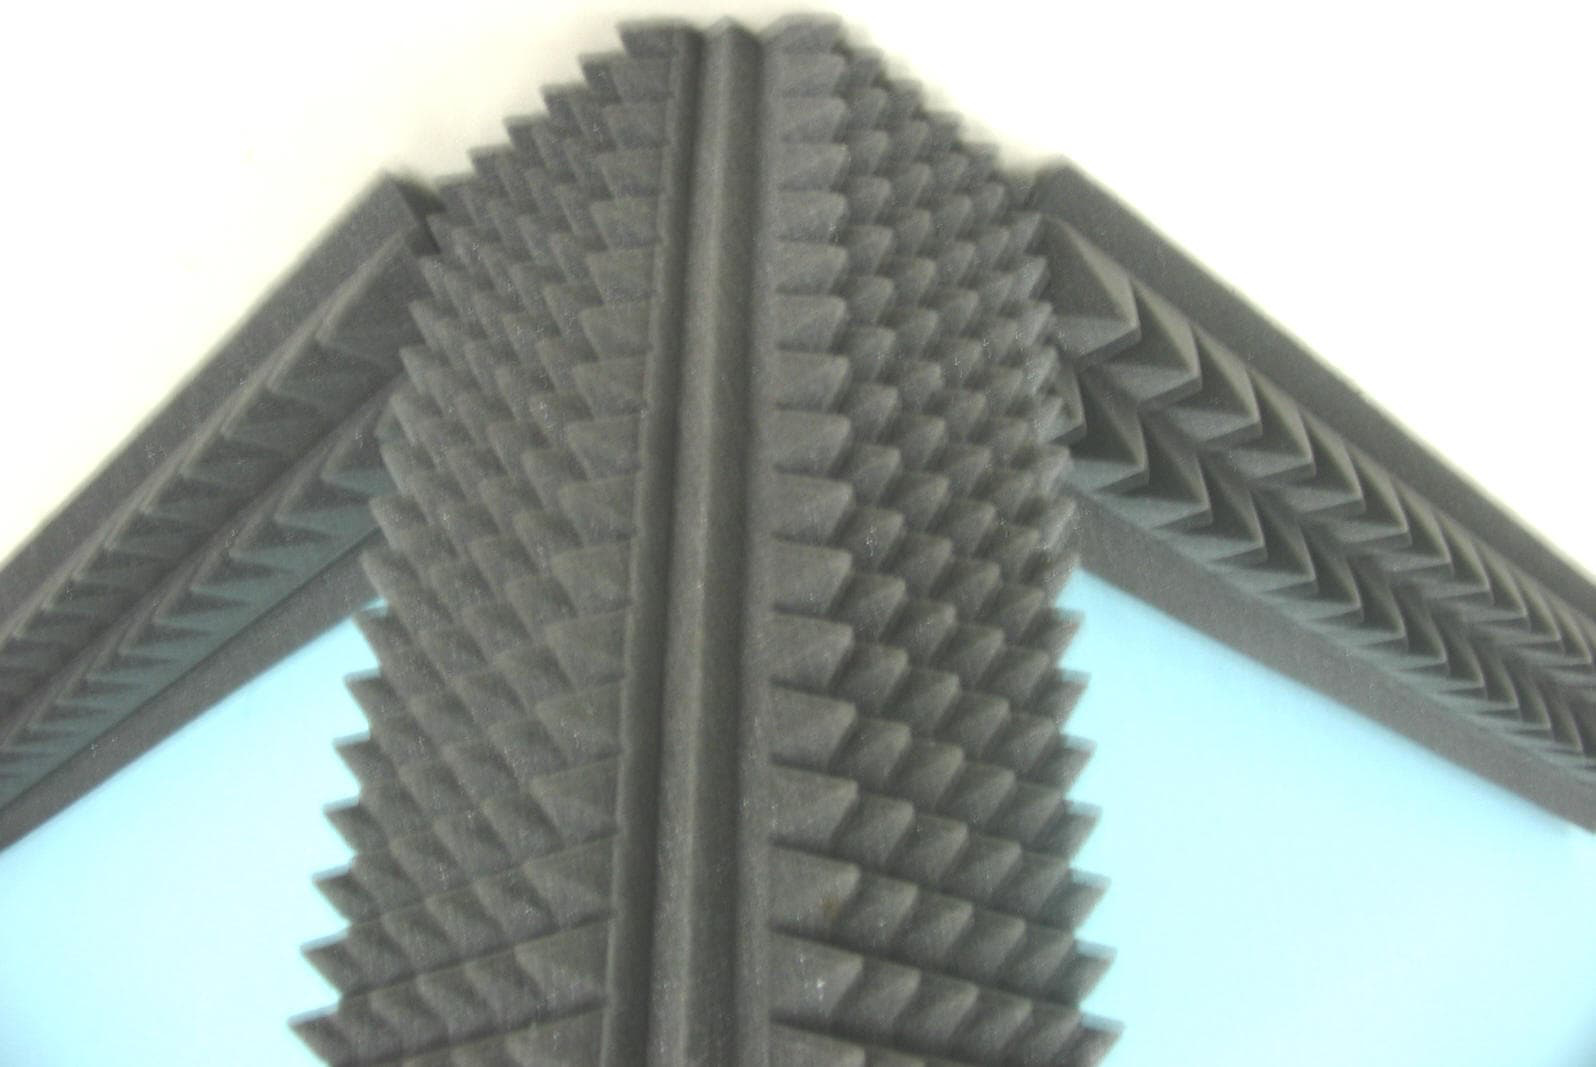 Picture of Outer Edge Corner Pyramid Bass Traps